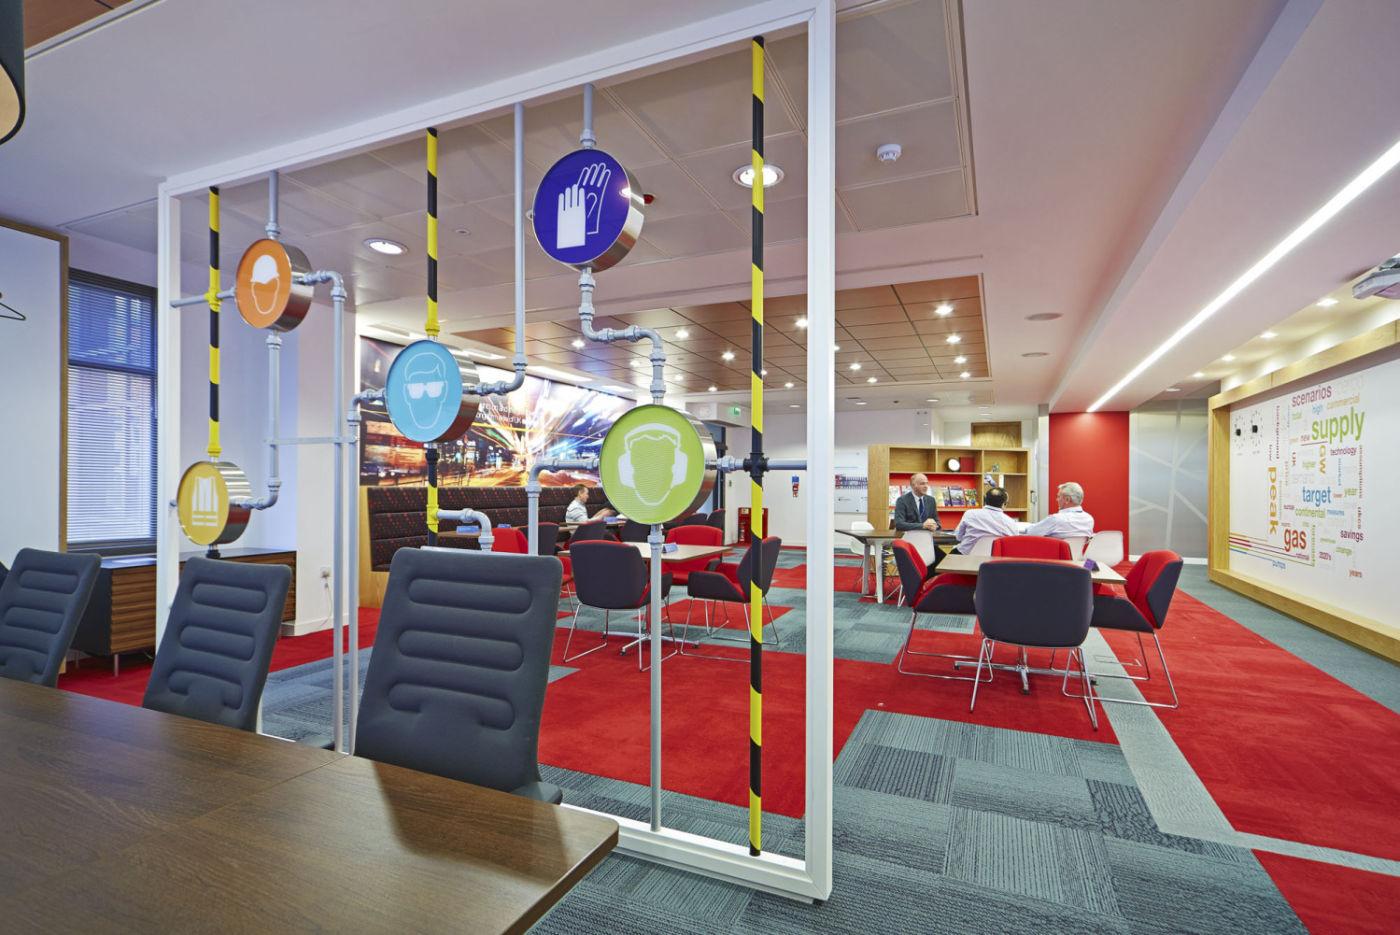 Meeting area divided with exposed pipes and colourful safety graphics